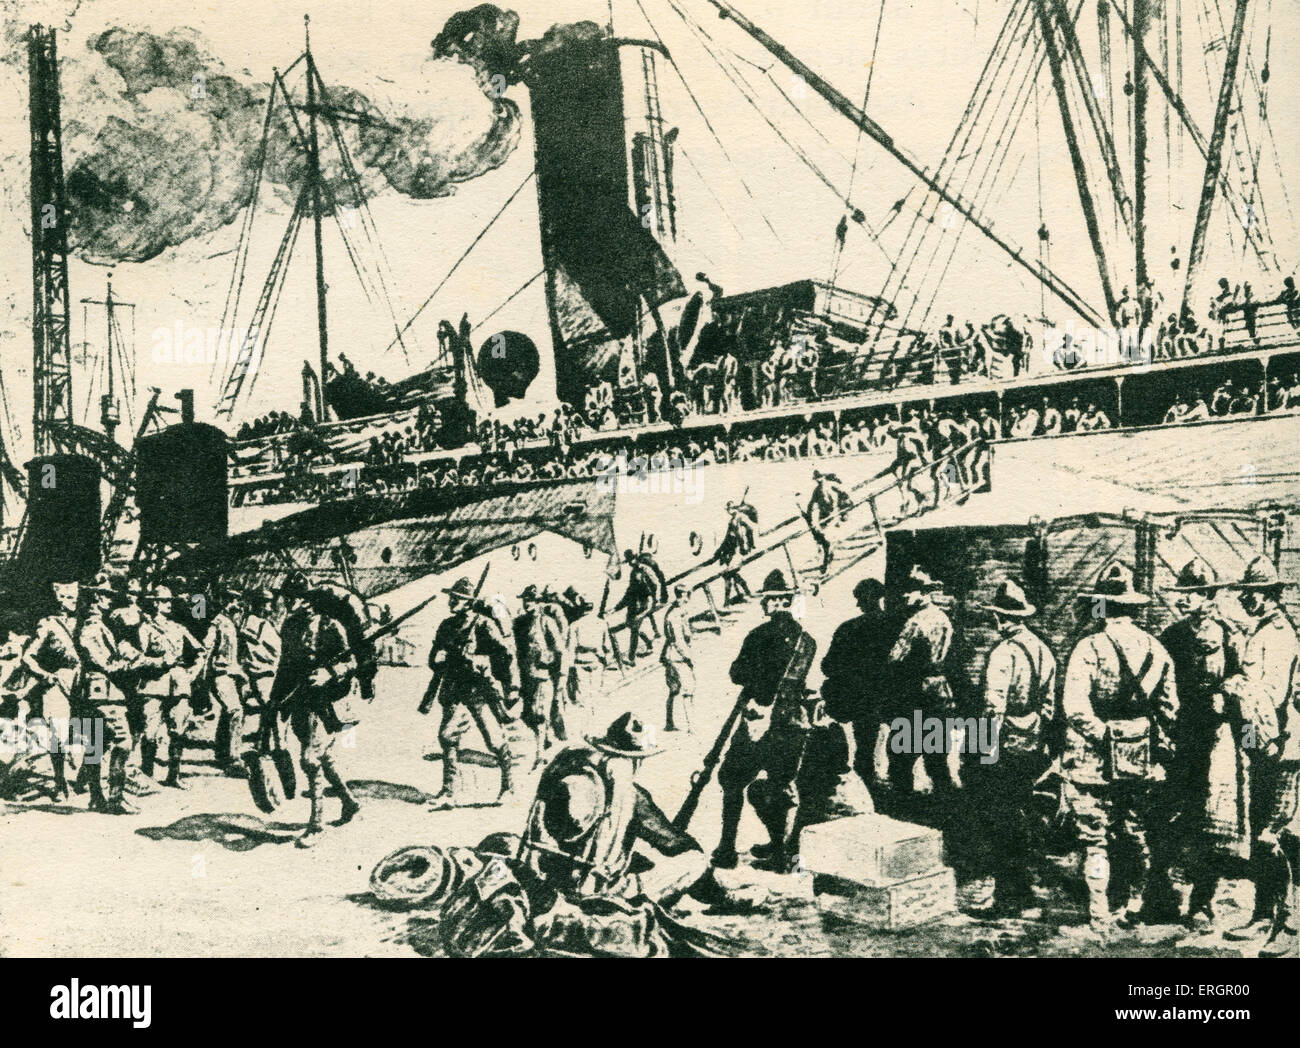 World War One - American soldiers disembarking at Brest, France. - Stock Image